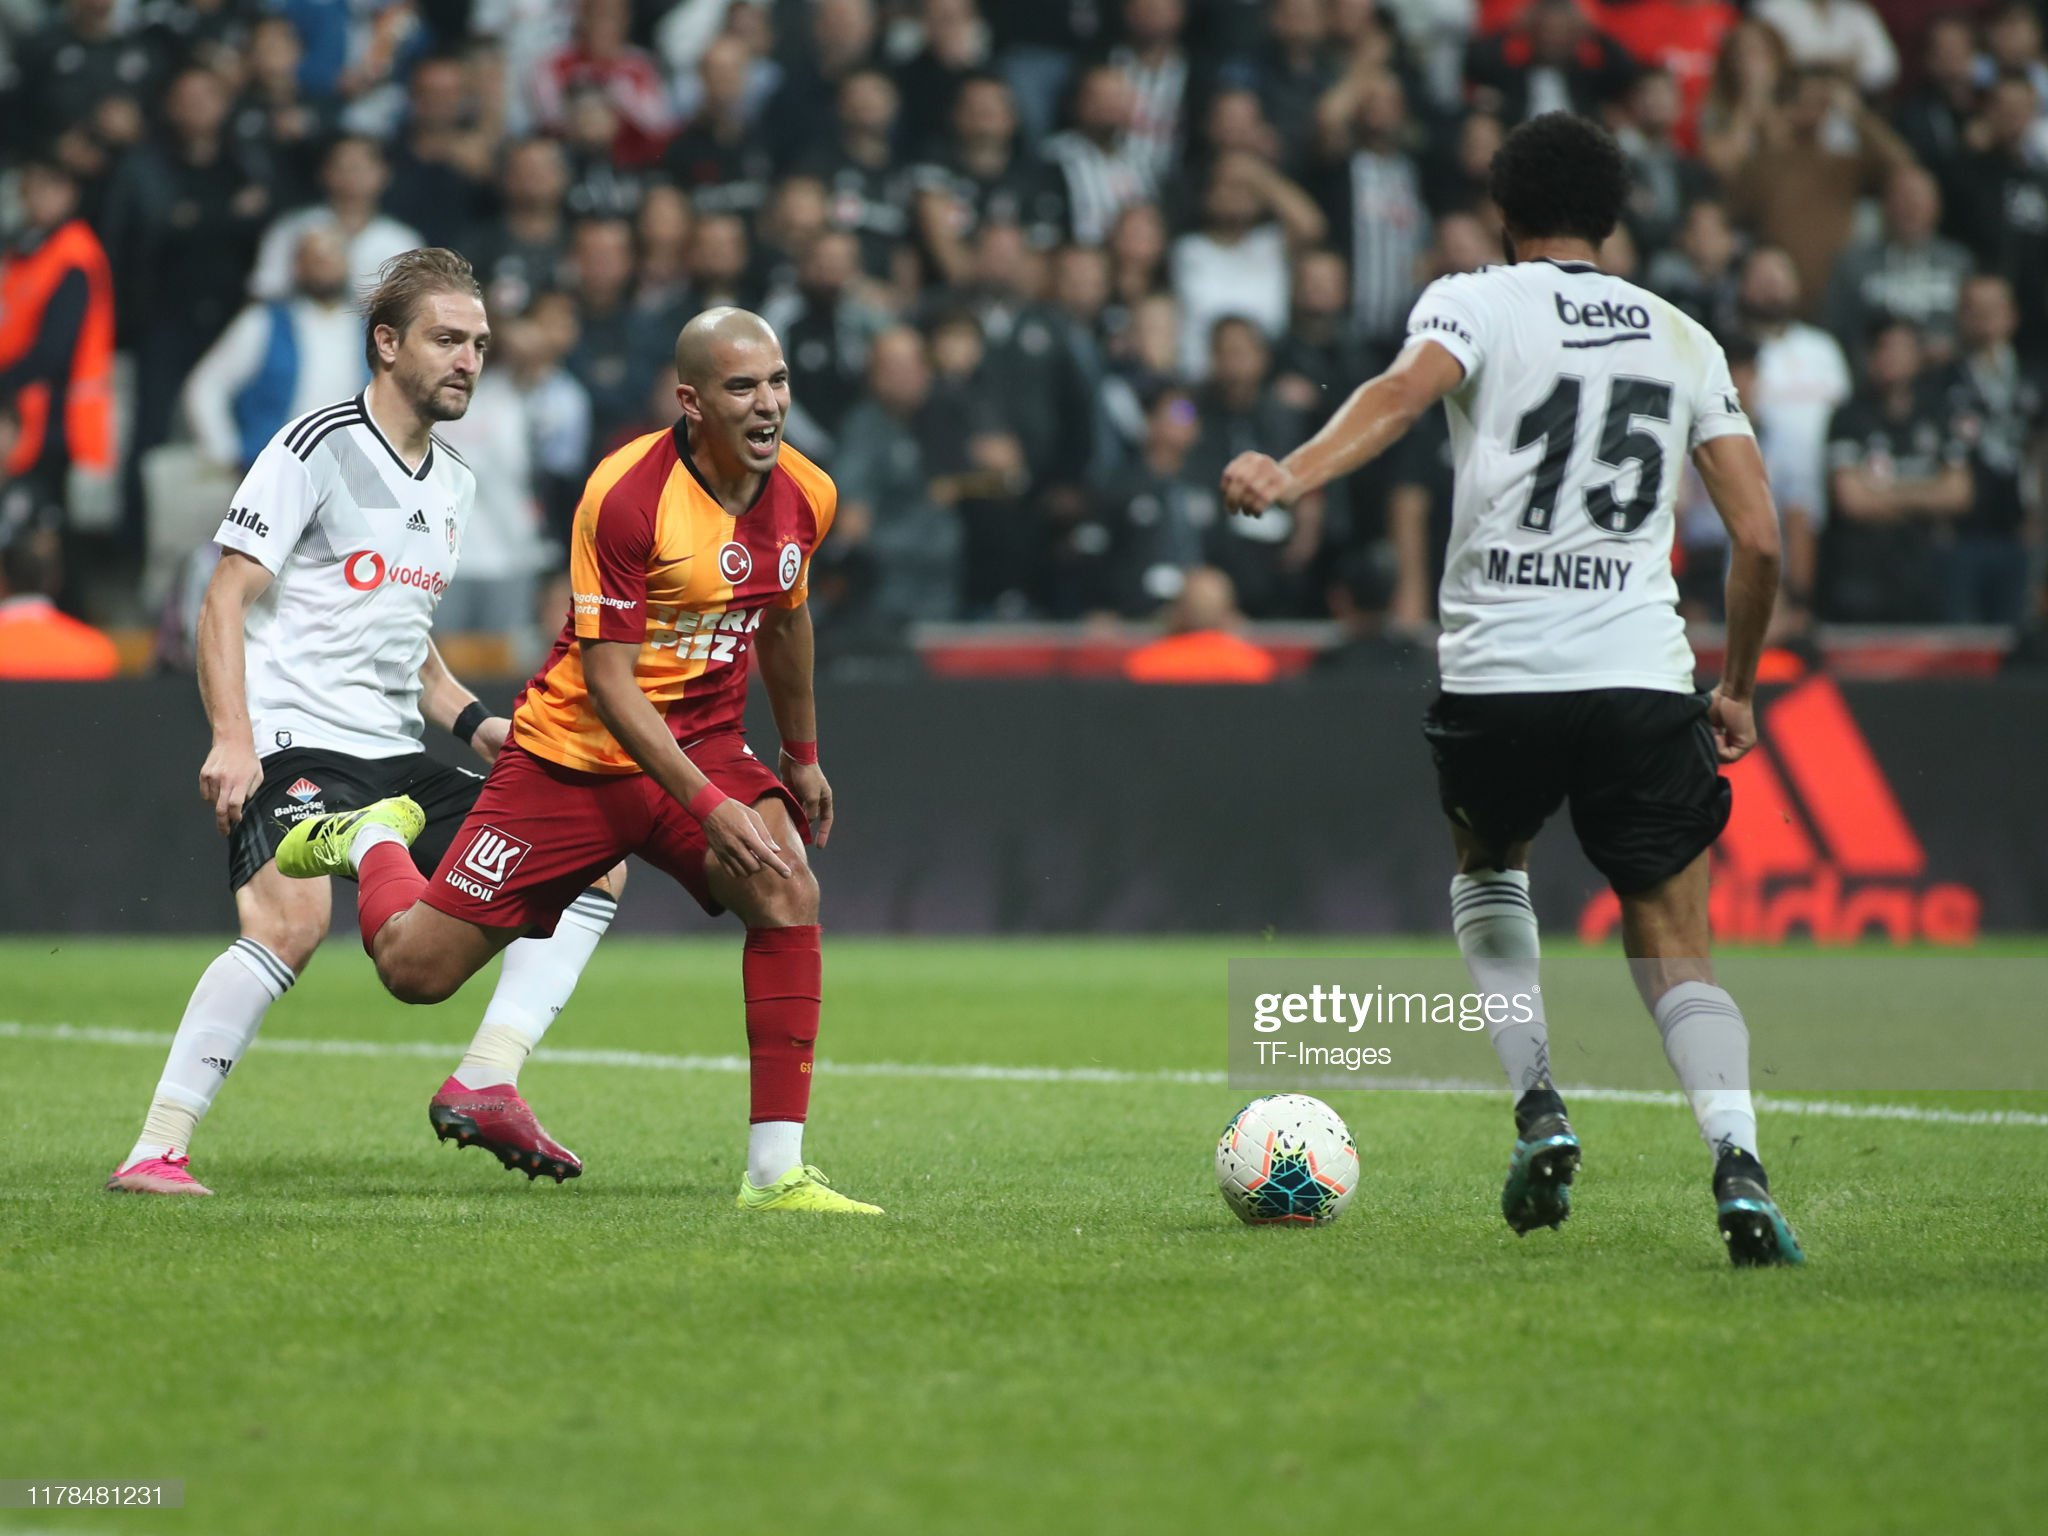 Galatasaray v Besiktas Preview, prediction and odds